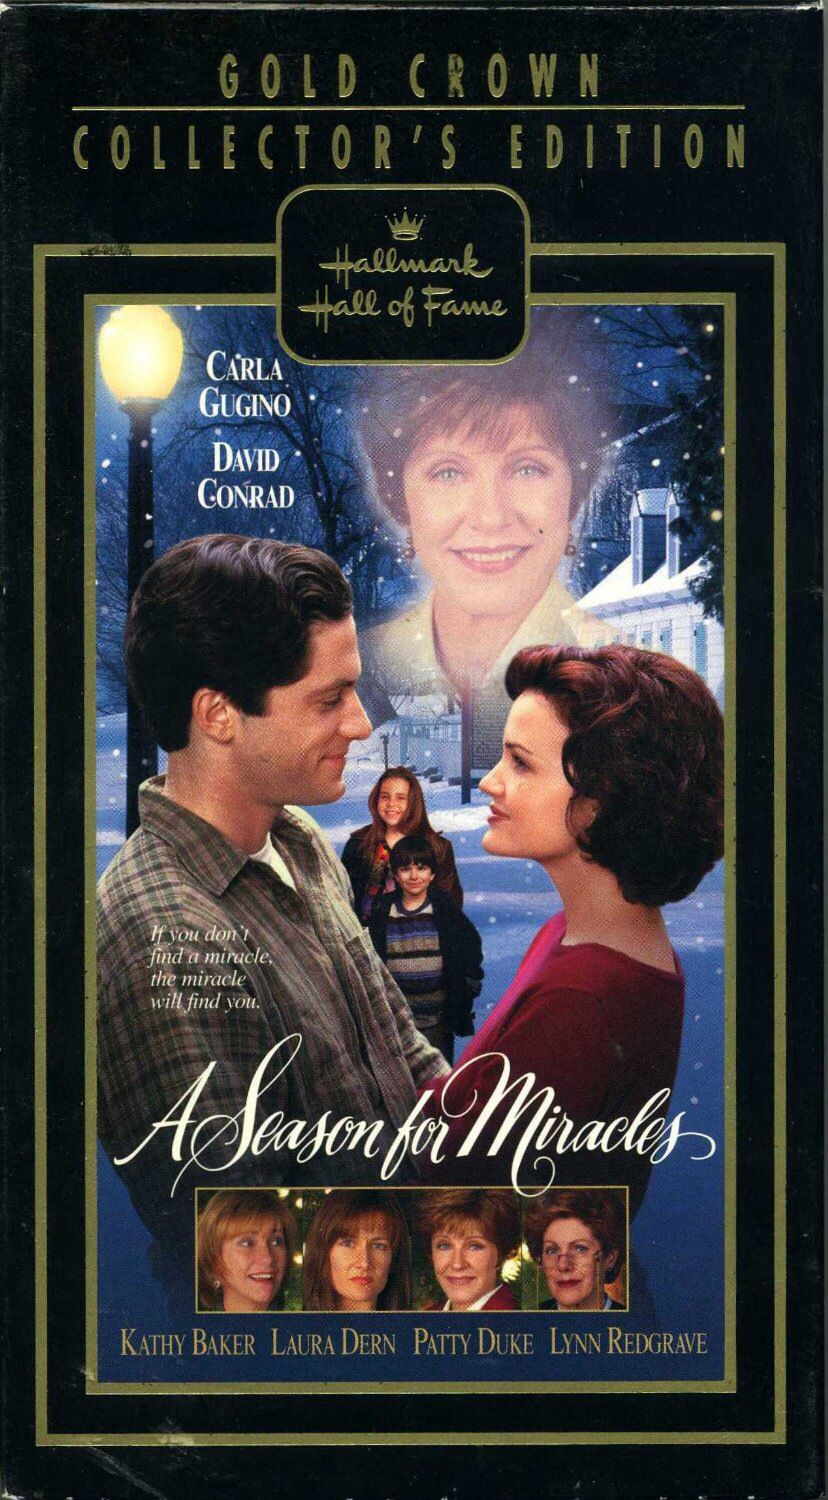 A Season for Miracles (a Hallmark Channel movie